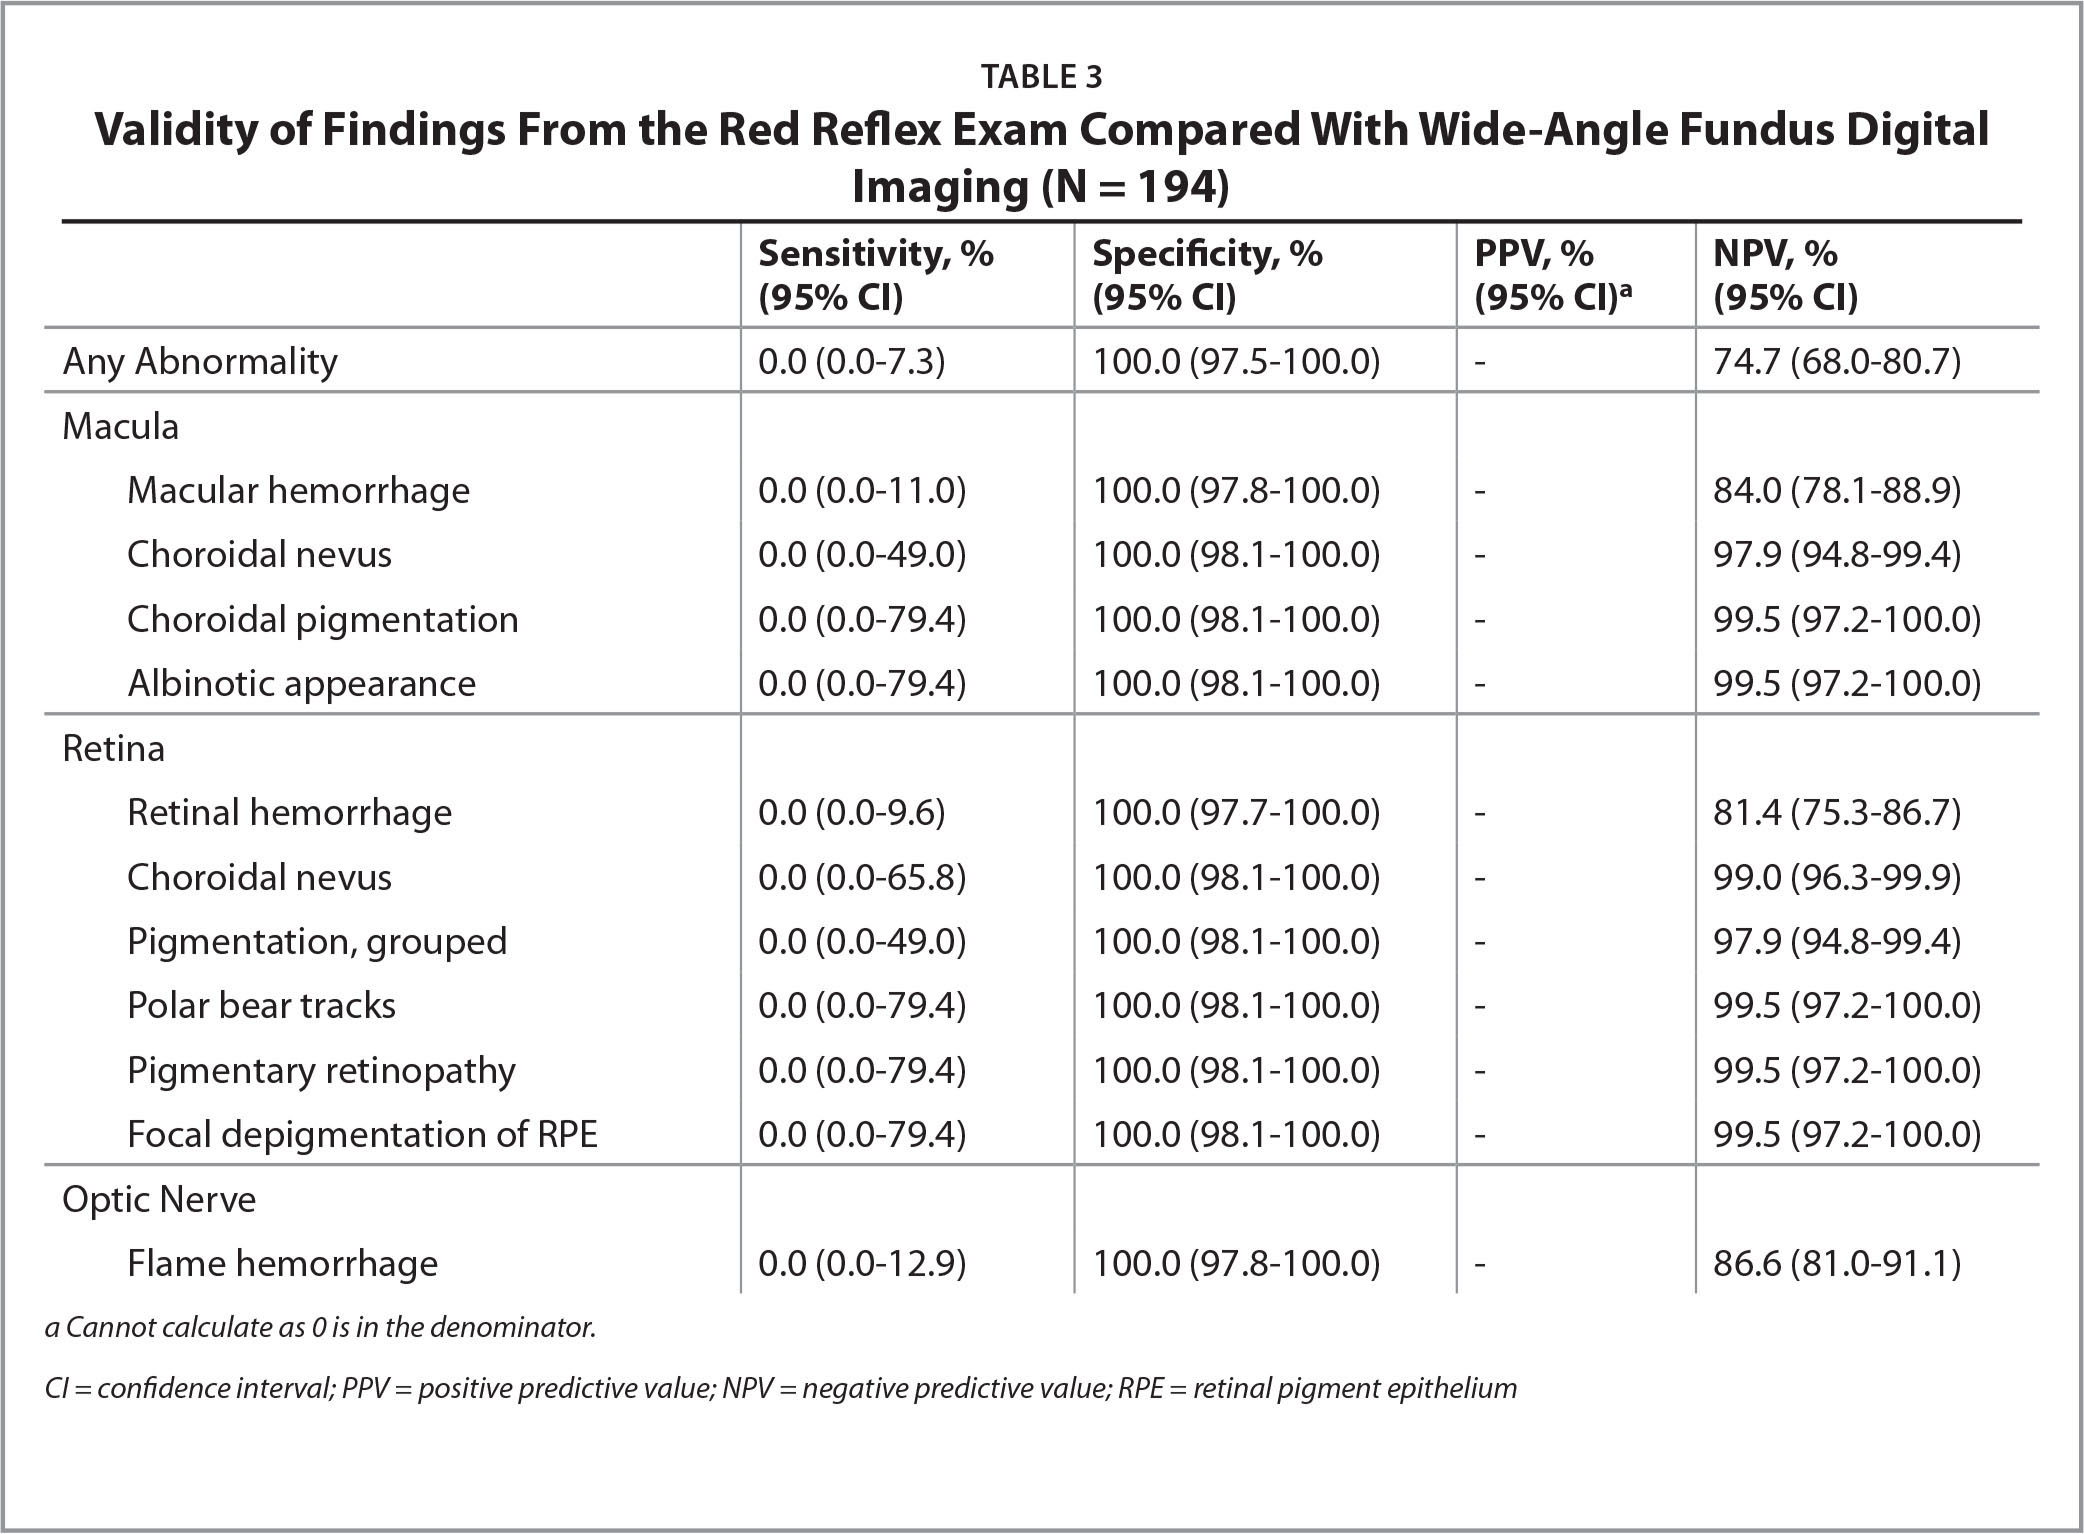 Validity of Findings From the Red Reflex Exam Compared With Wide-Angle Fundus Digital Imaging (N = 194)